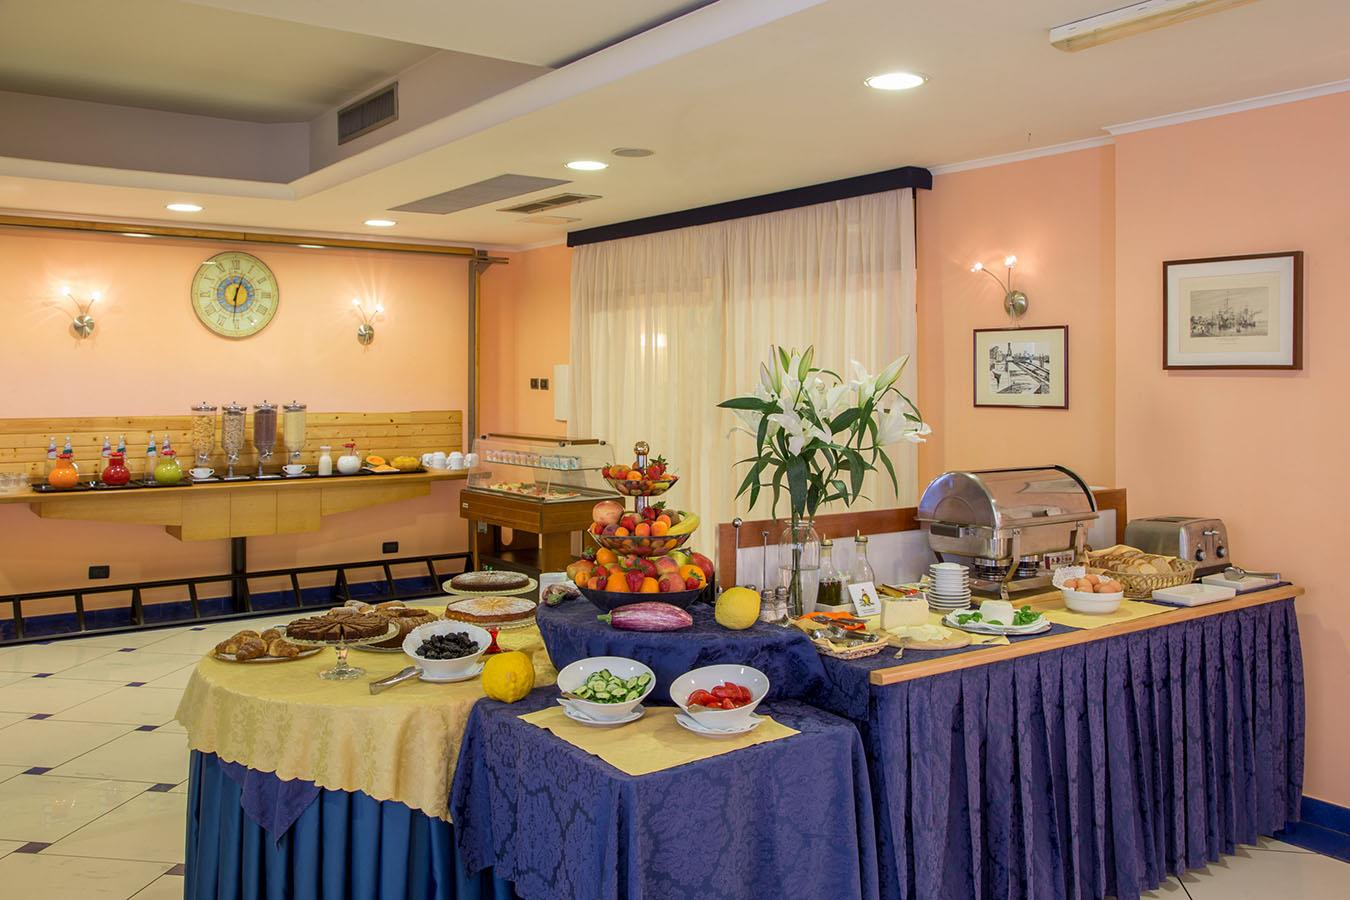 book.bestwestern.it/IT/immagini/98289/9ba2c00b-48c...